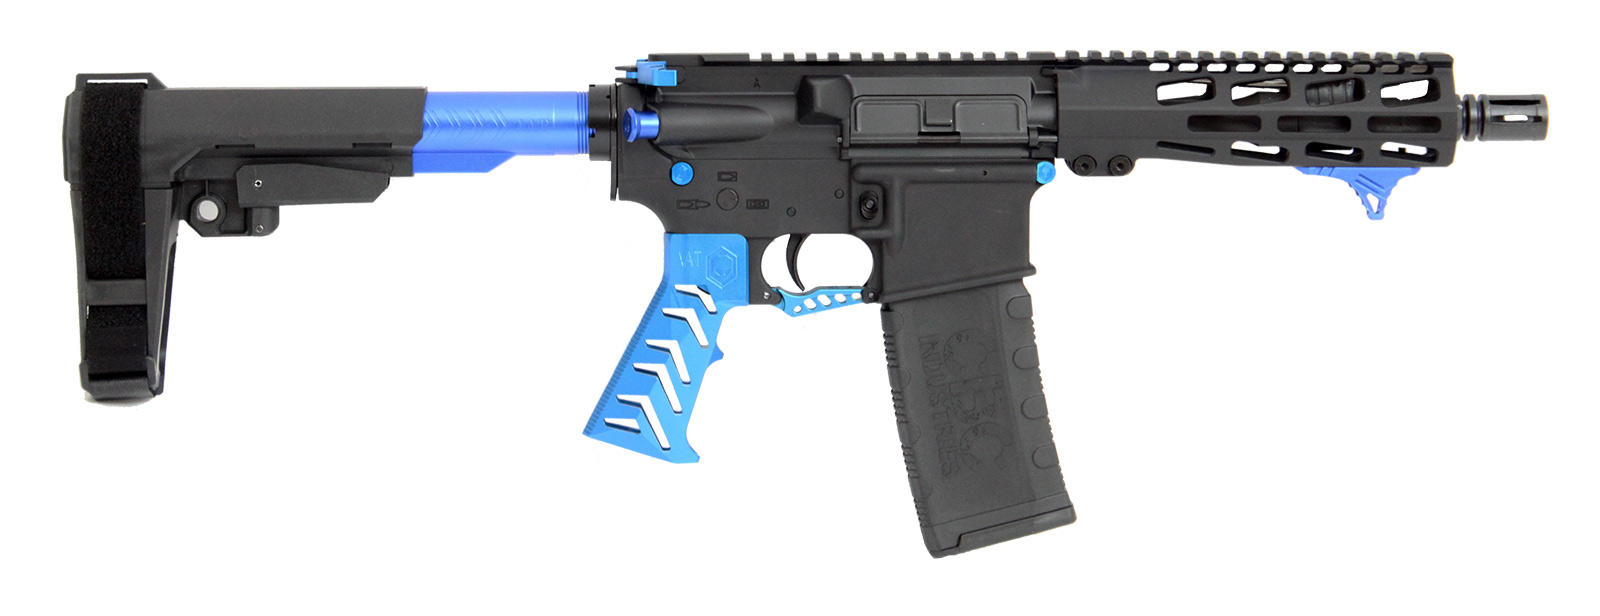 cbc-ps2-forged-aluminum-ar-pistol-alien-blue-223-wylde-7-5″-barrel-m-lok-rail-sba3-brace